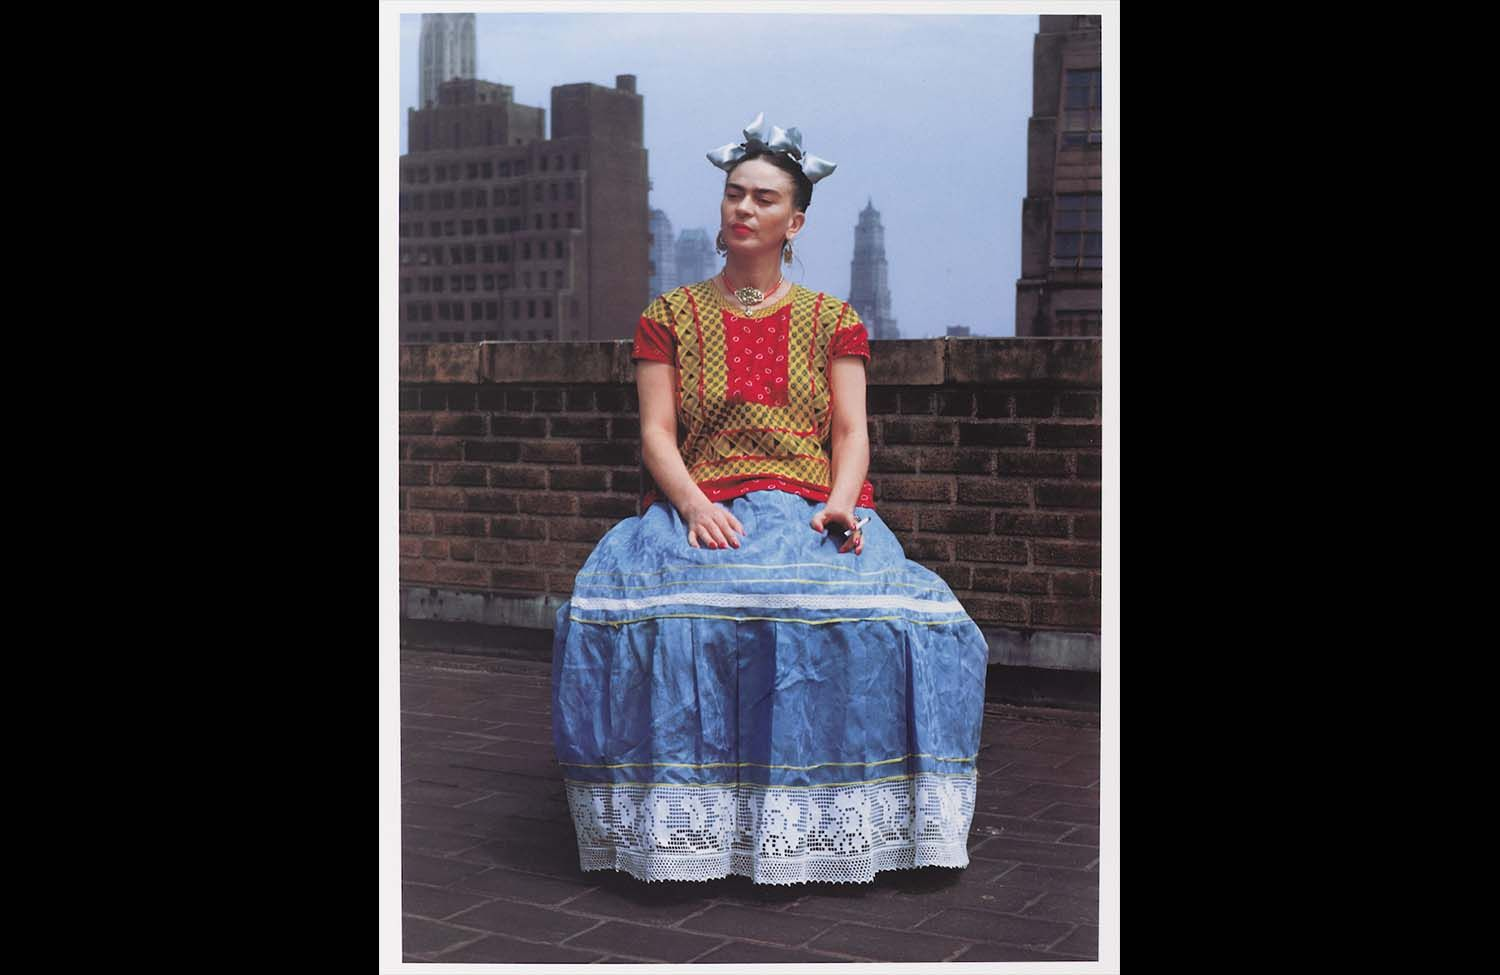 Frida Kahlo: Appearances Can Be Deceiving 2